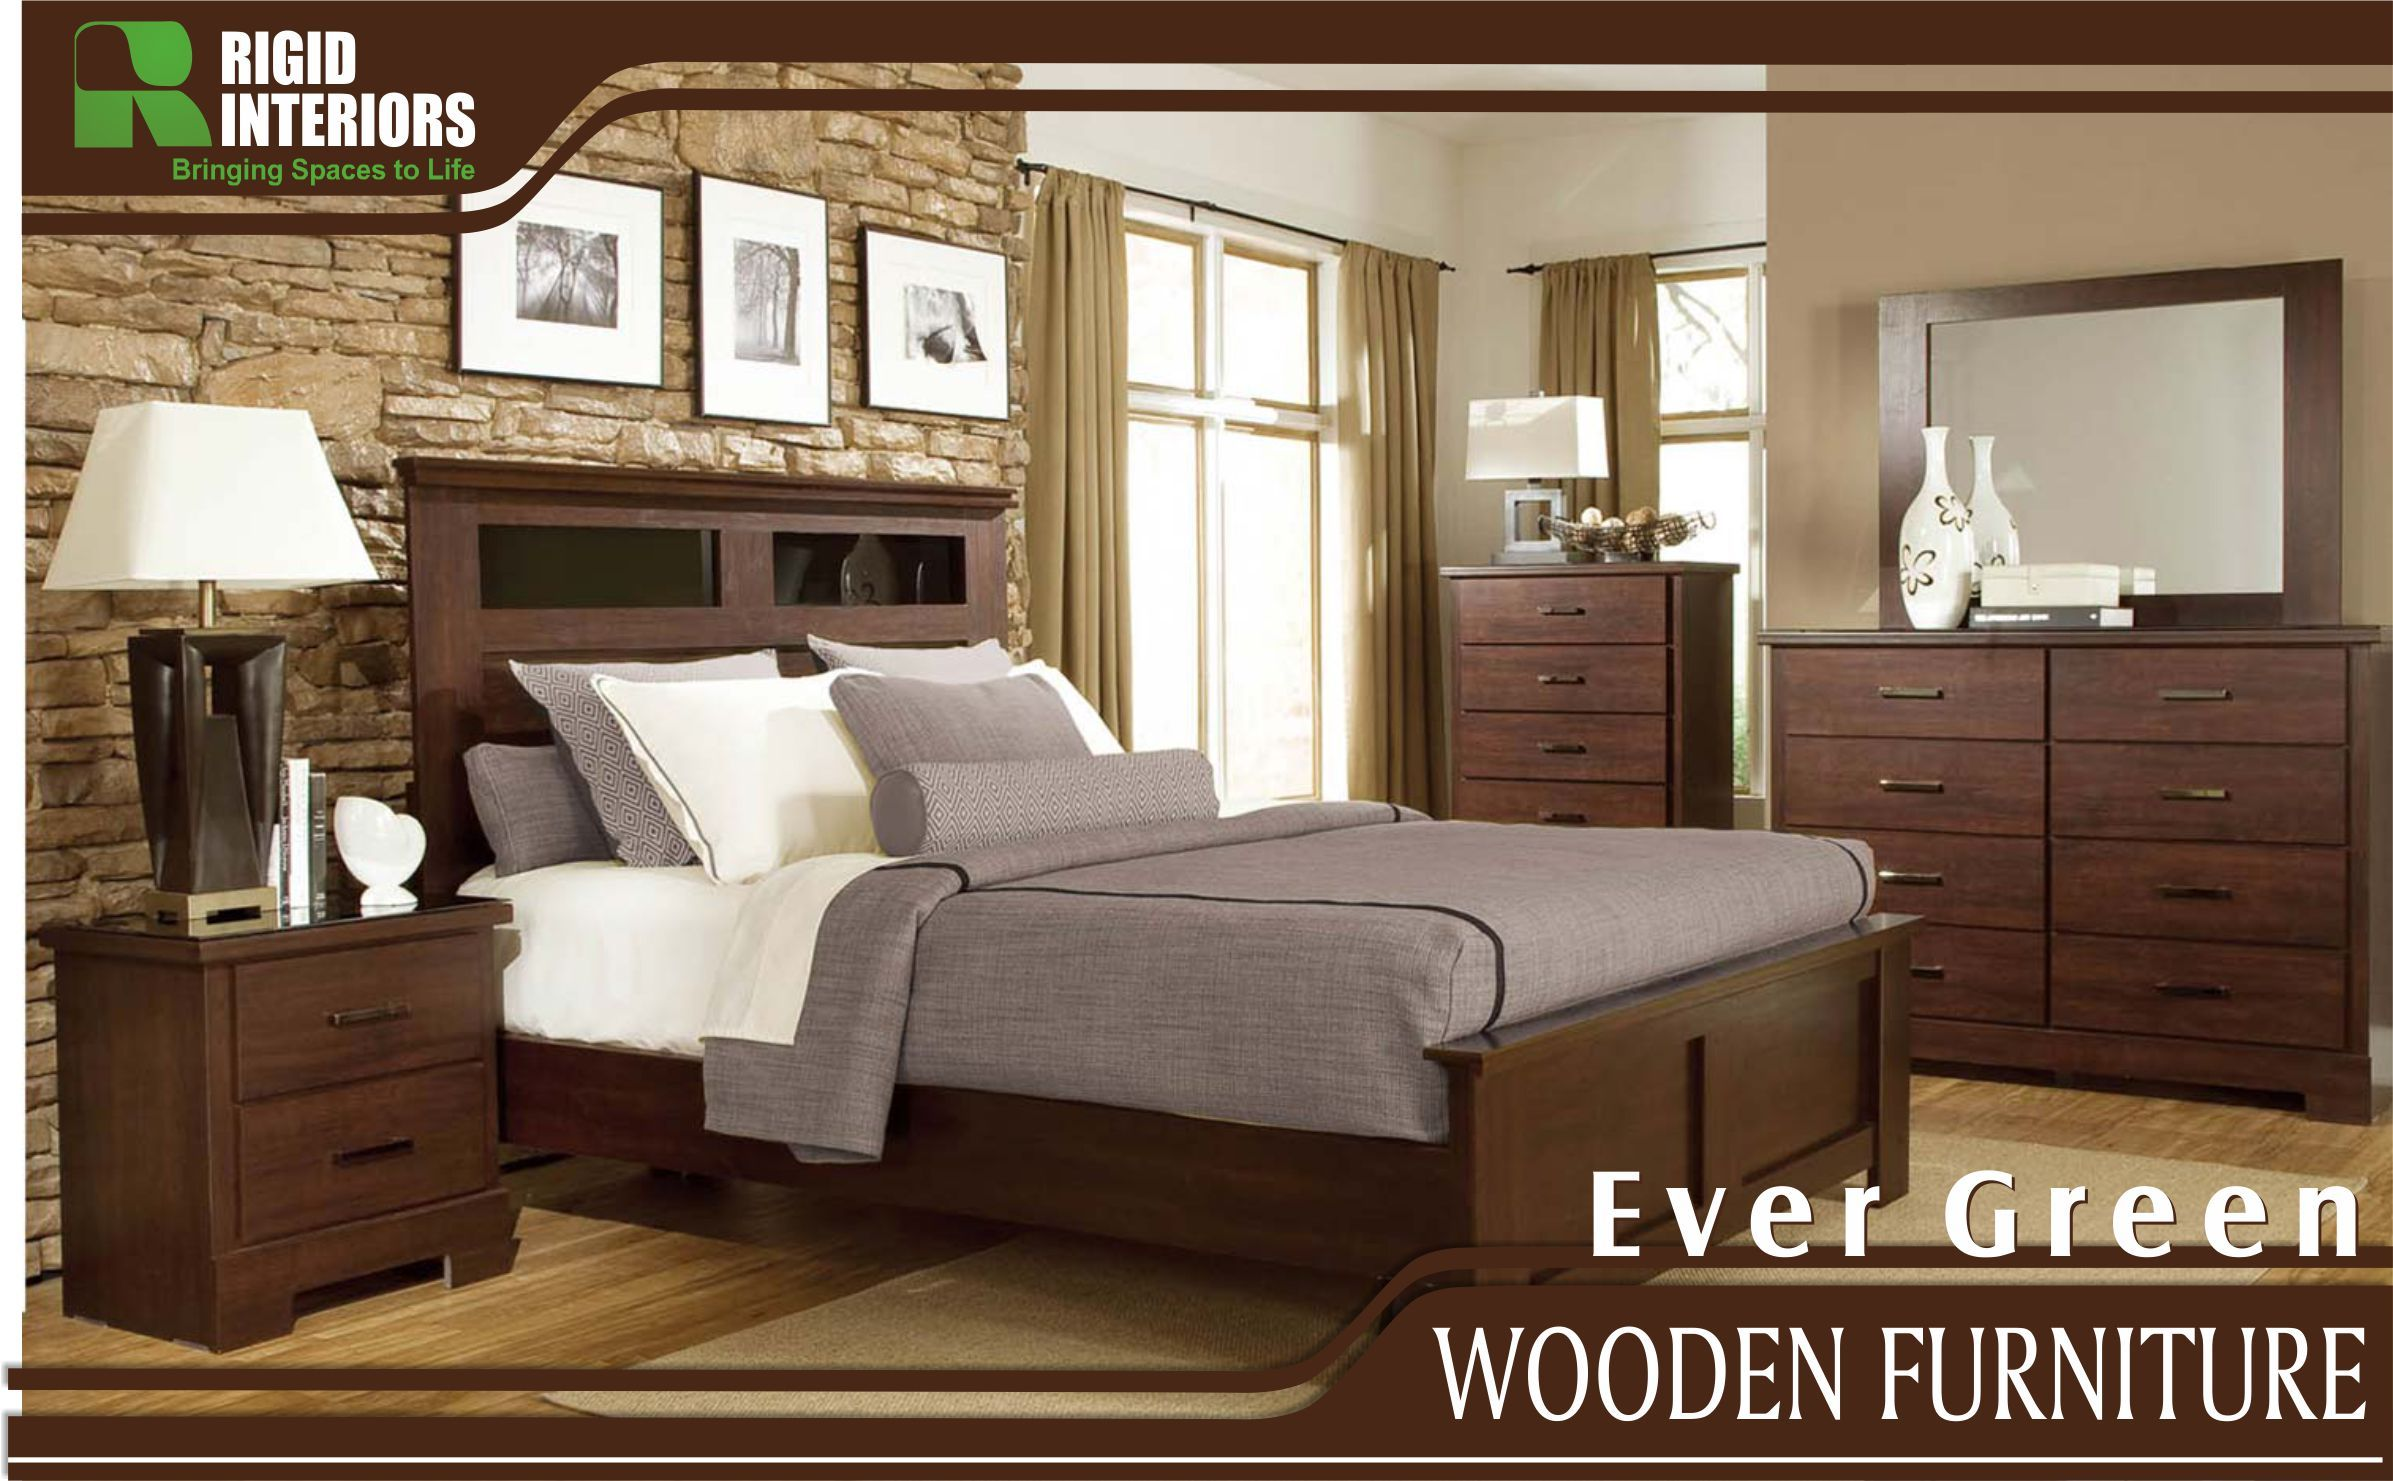 As we all are aware from the fact that wooden furniture is the